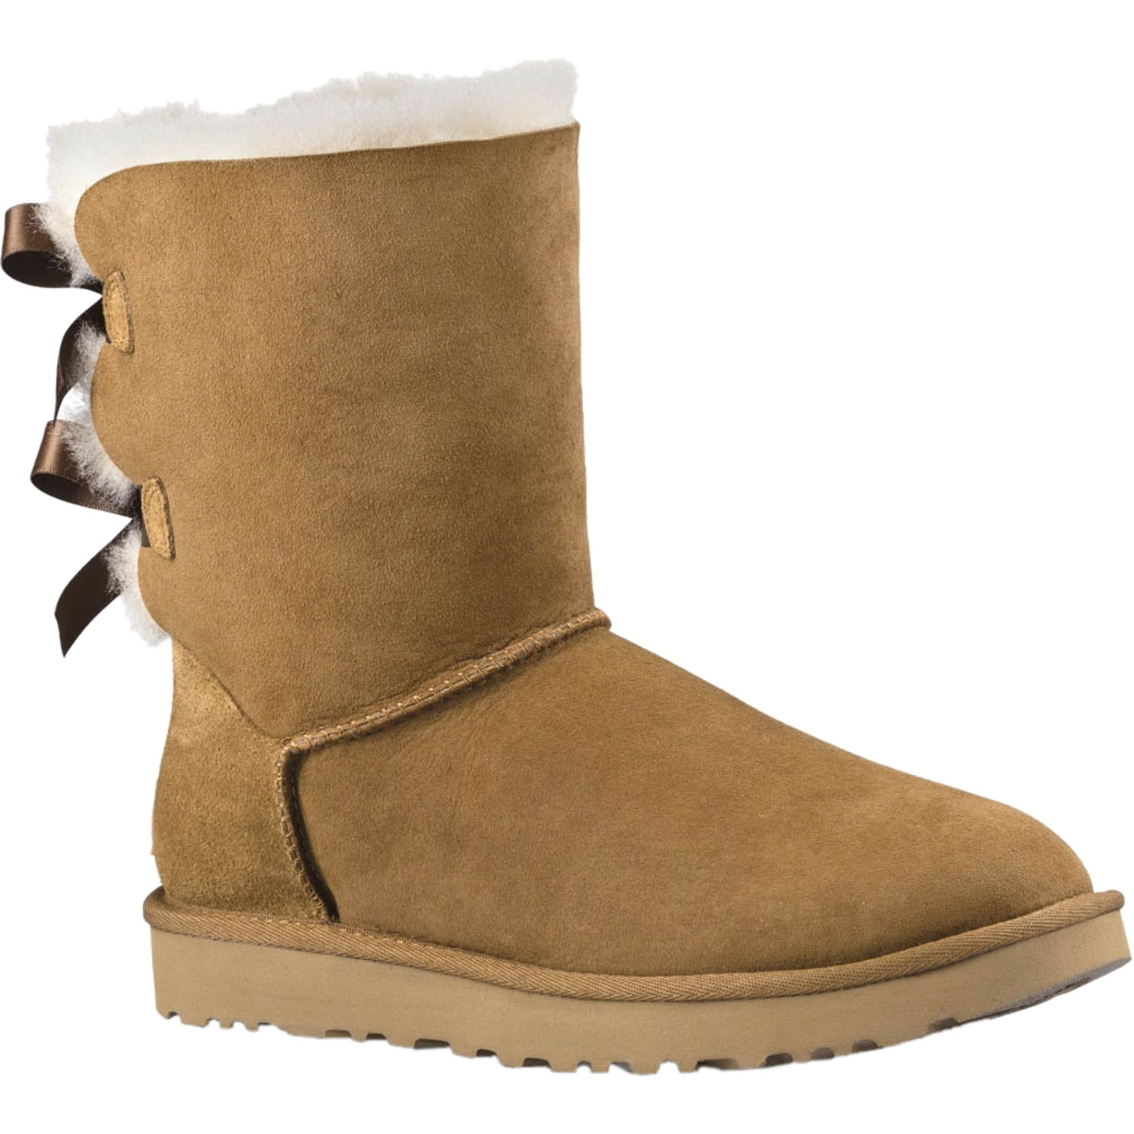 873201bddd7 Ugg Bailey Bow Ii Short Boots | Booties | Shoes | Shop The Exchange